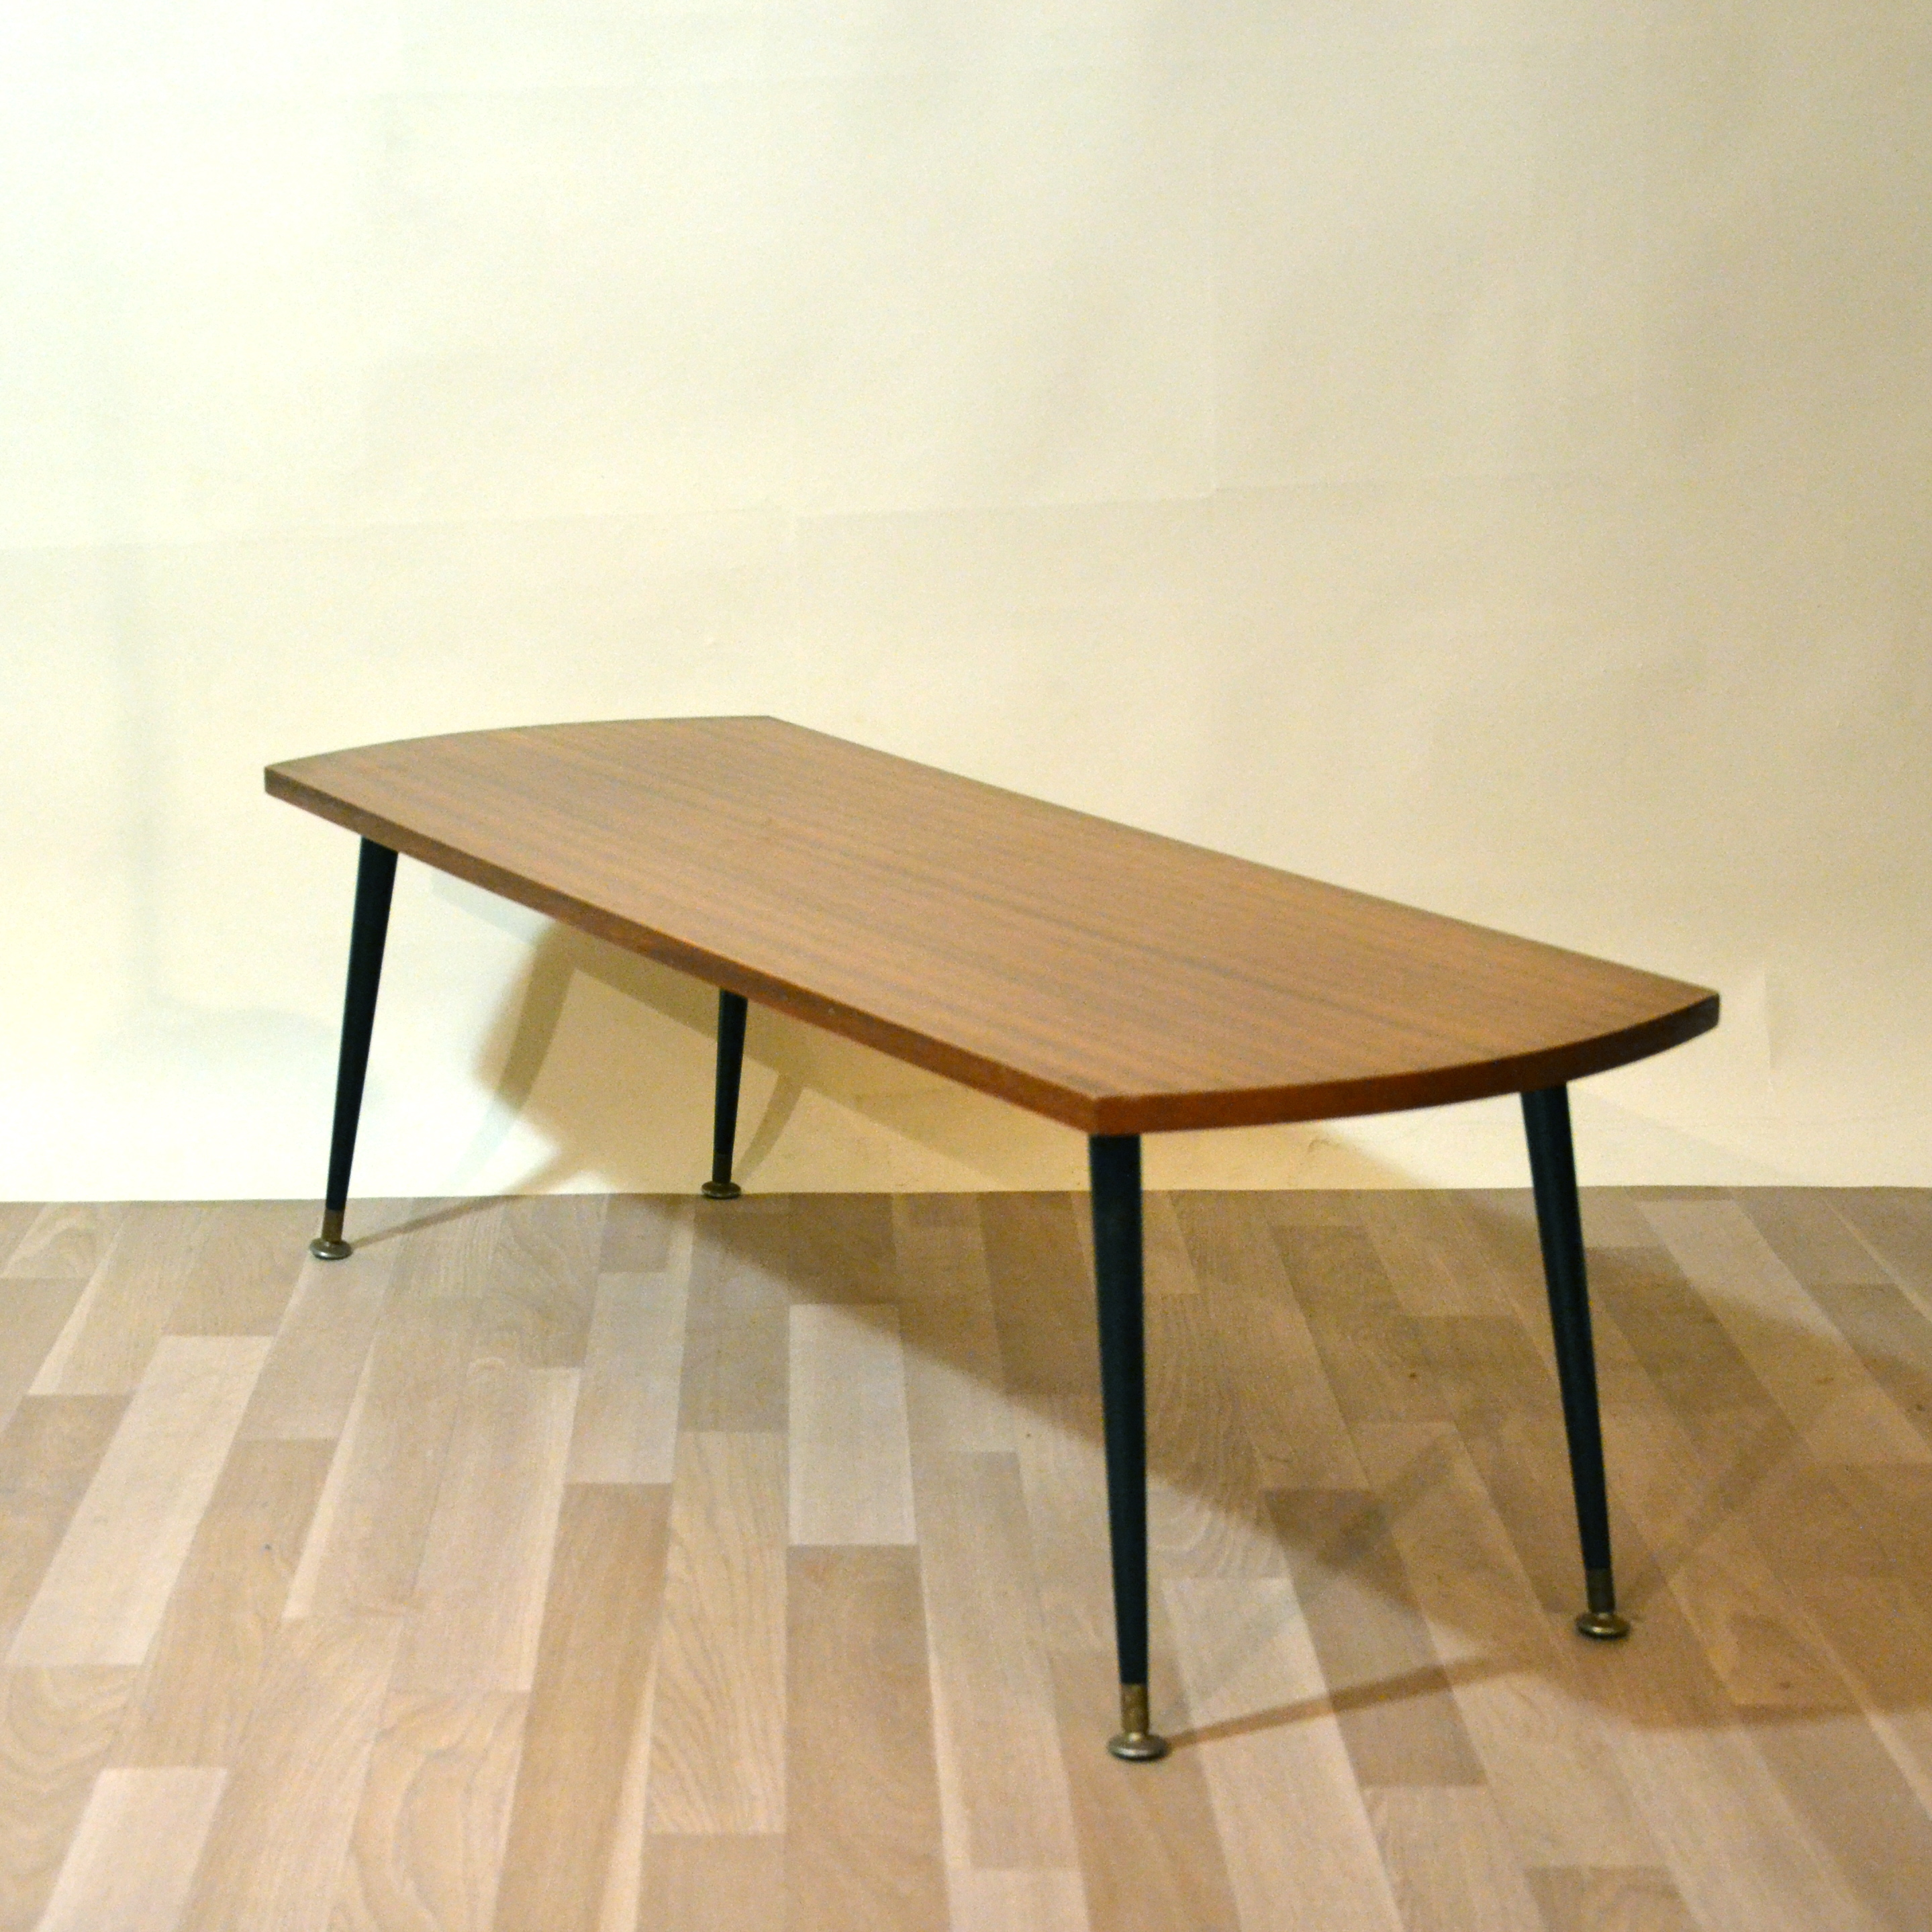 Table basse scandinave fine bindies for Table basse scandinave leclerc